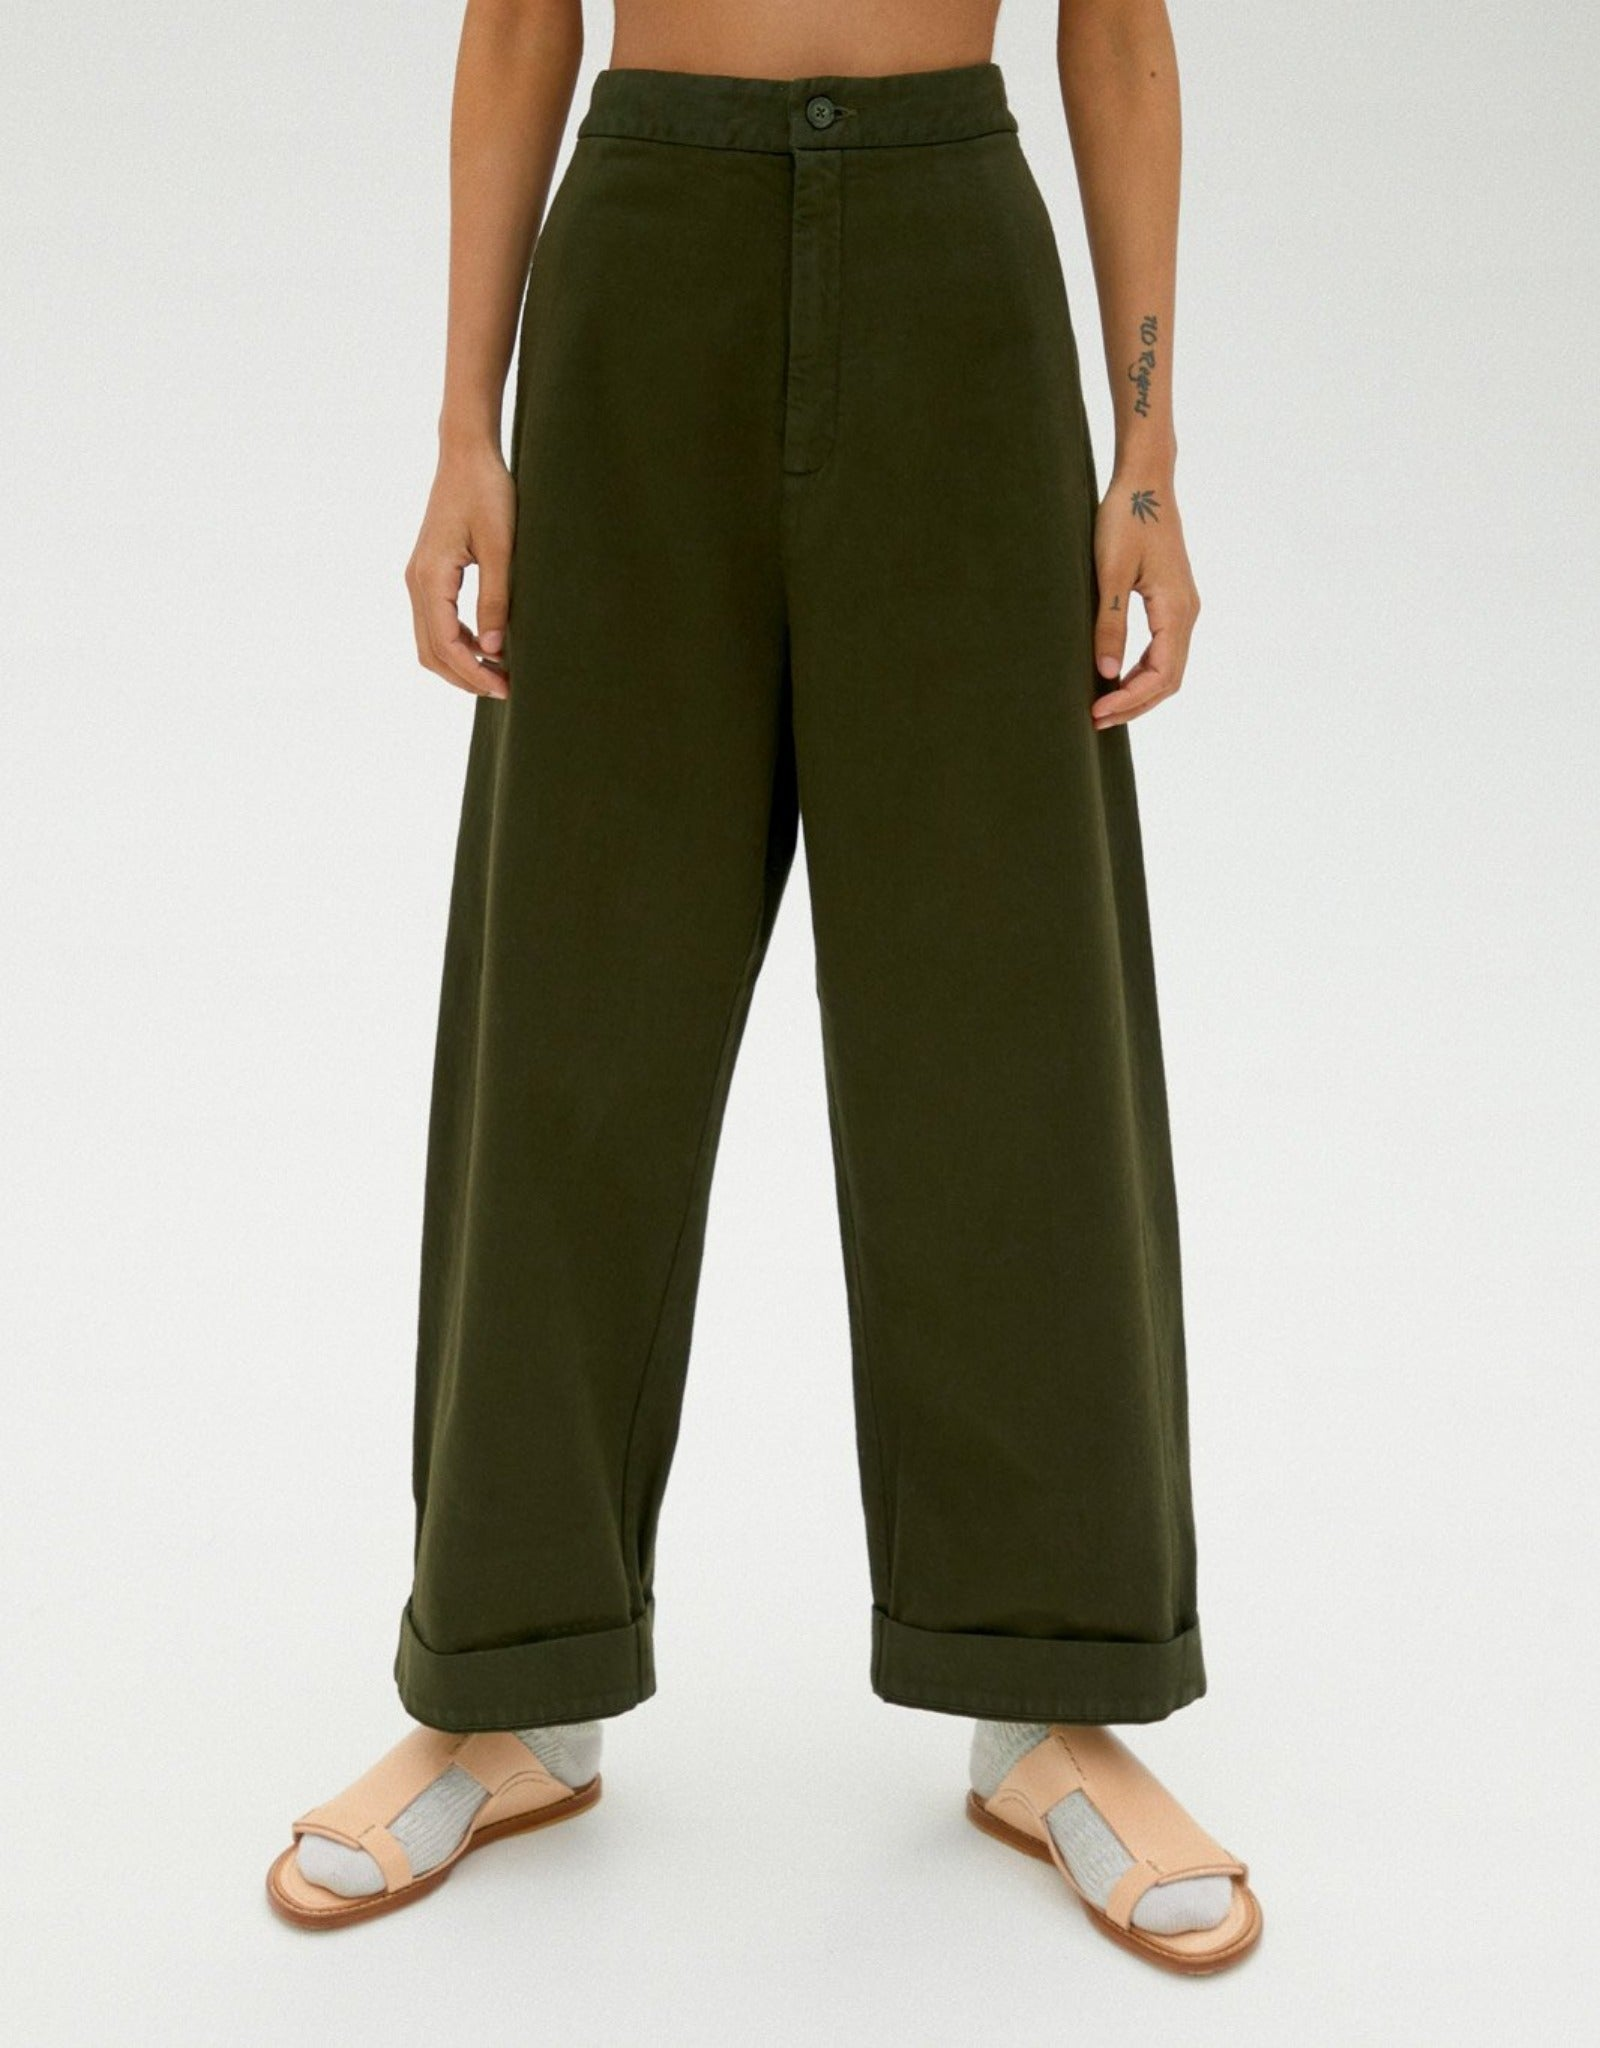 CHUNKY COTTON PANTS